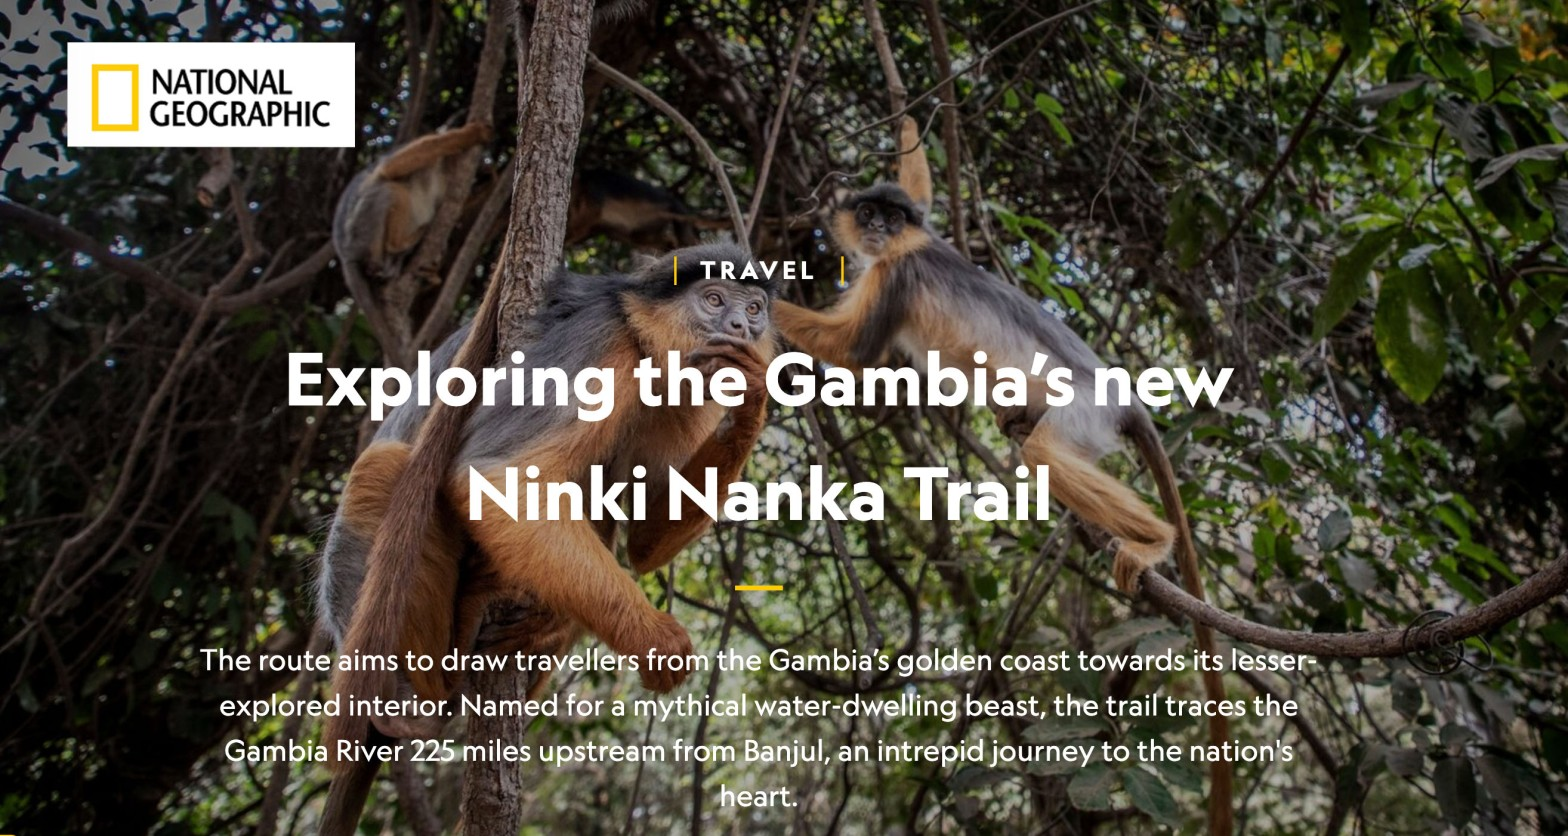 NatGeo - opening shot of an article about the Gambia, with red colobus monkeys swinging in the trees. Image ©Jason Florio